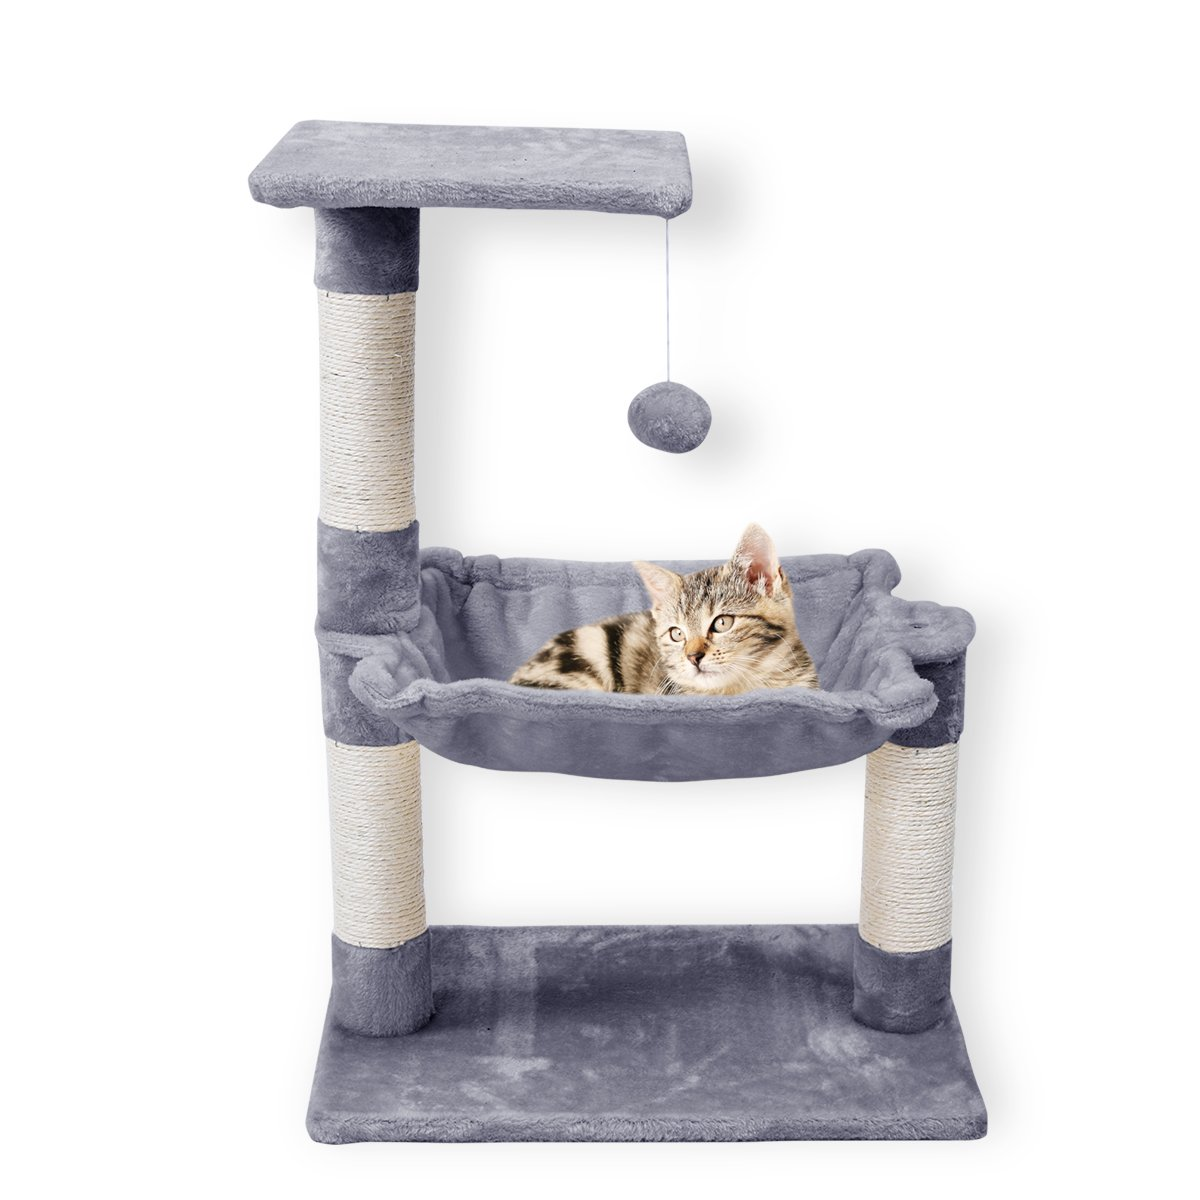 FirstWell Cat Trees - Kitty Bed Furniture, Kitten Climb Stand, with Perch, Natural Sisal Ropes Scratching Post, Hanging Toy, 27.6 Inches, Grey